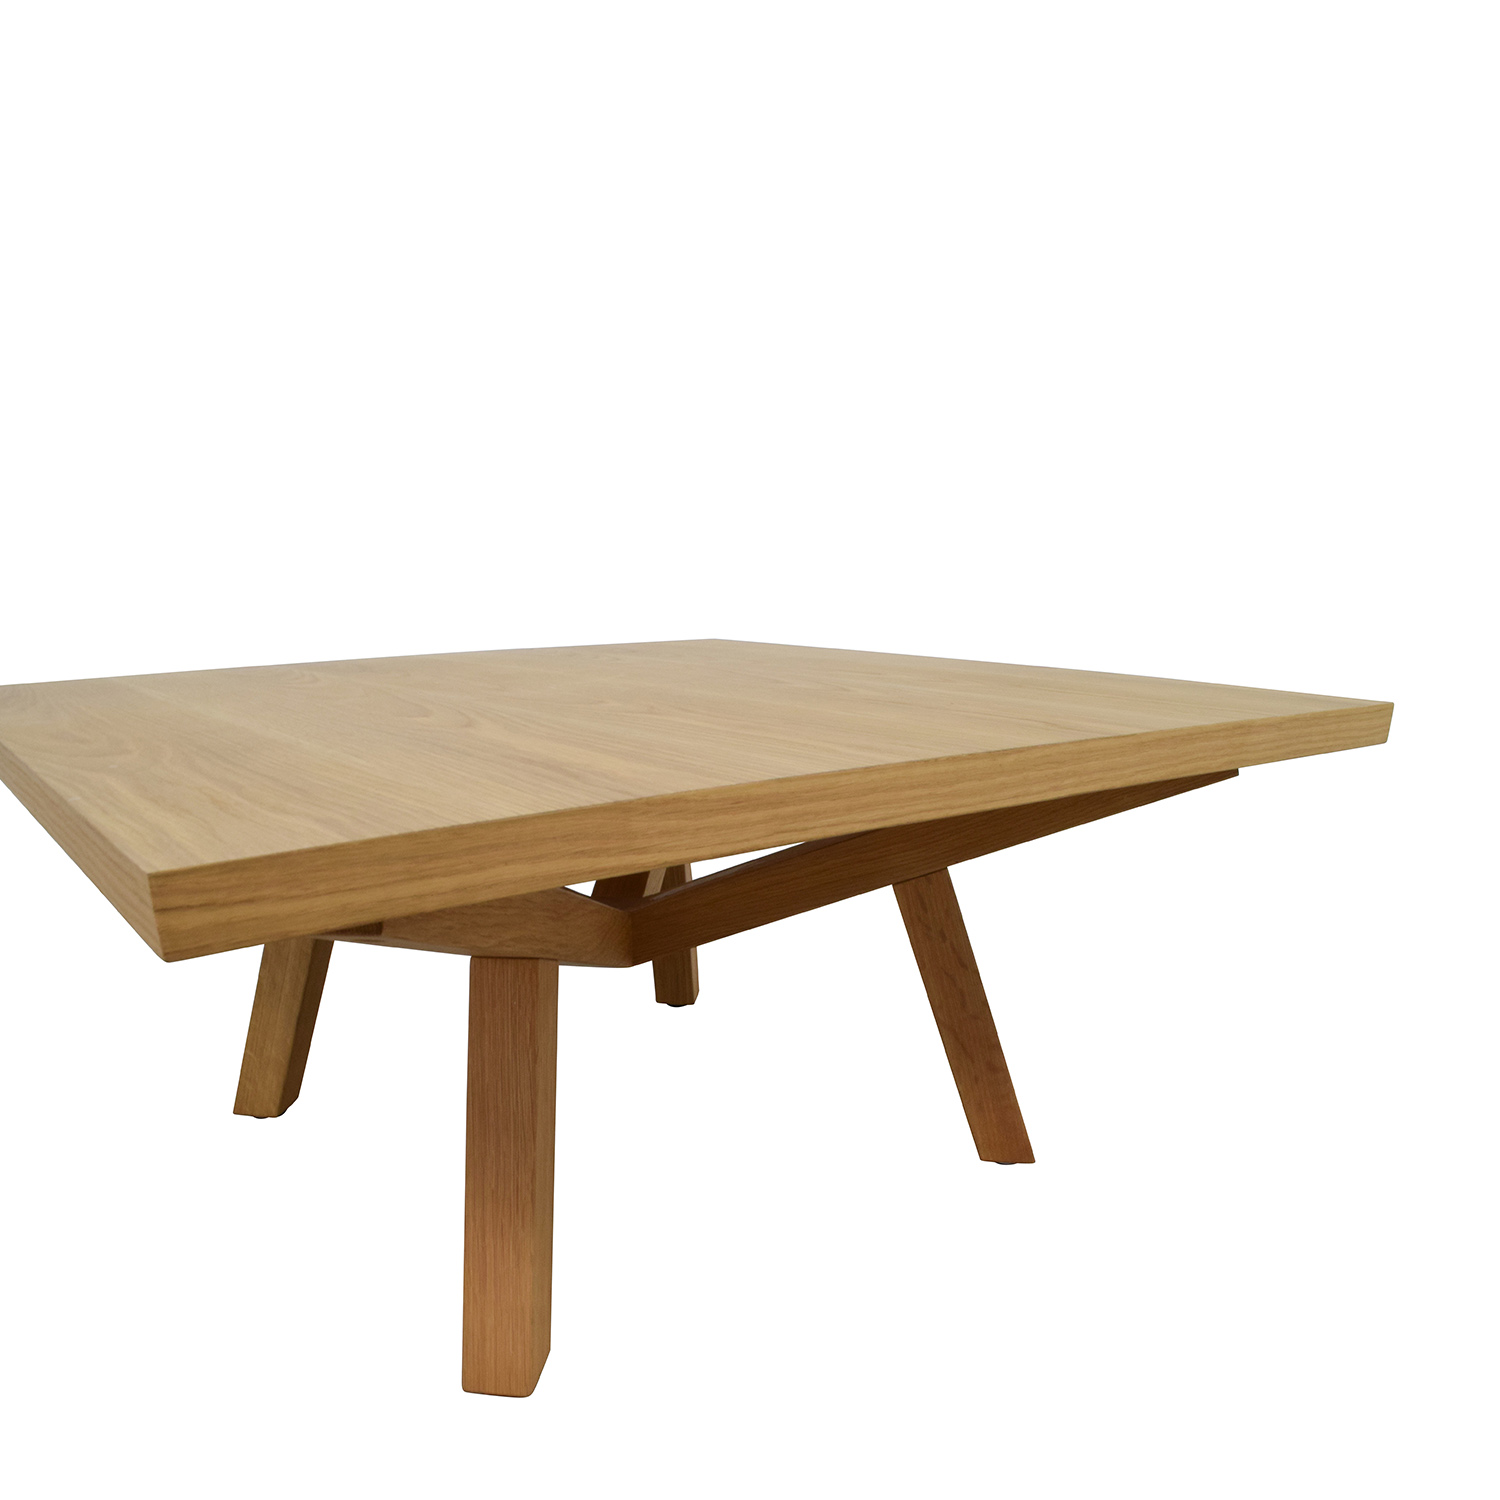 InMod InMod Sean Dix Forte Square Dining Table dimensions